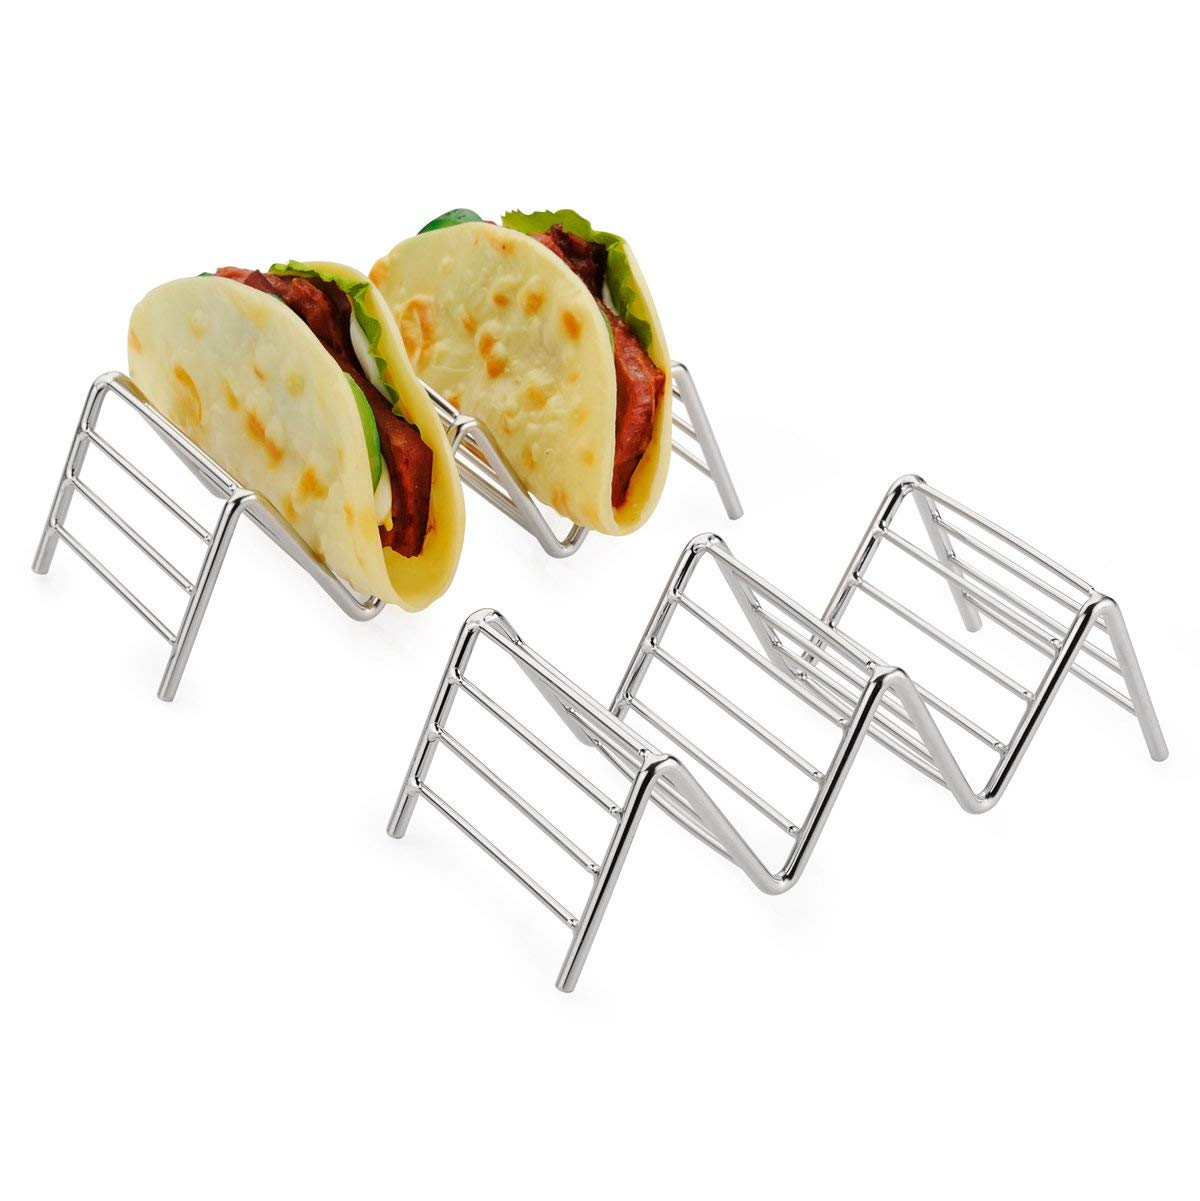 KABB 2-Pack Holder, Stand Stainless Steel Rustproof Rack Hold 2 or 3 Hard or Soft Shells Taco Truck Tray Style Oven Safe for Baking, Silvery